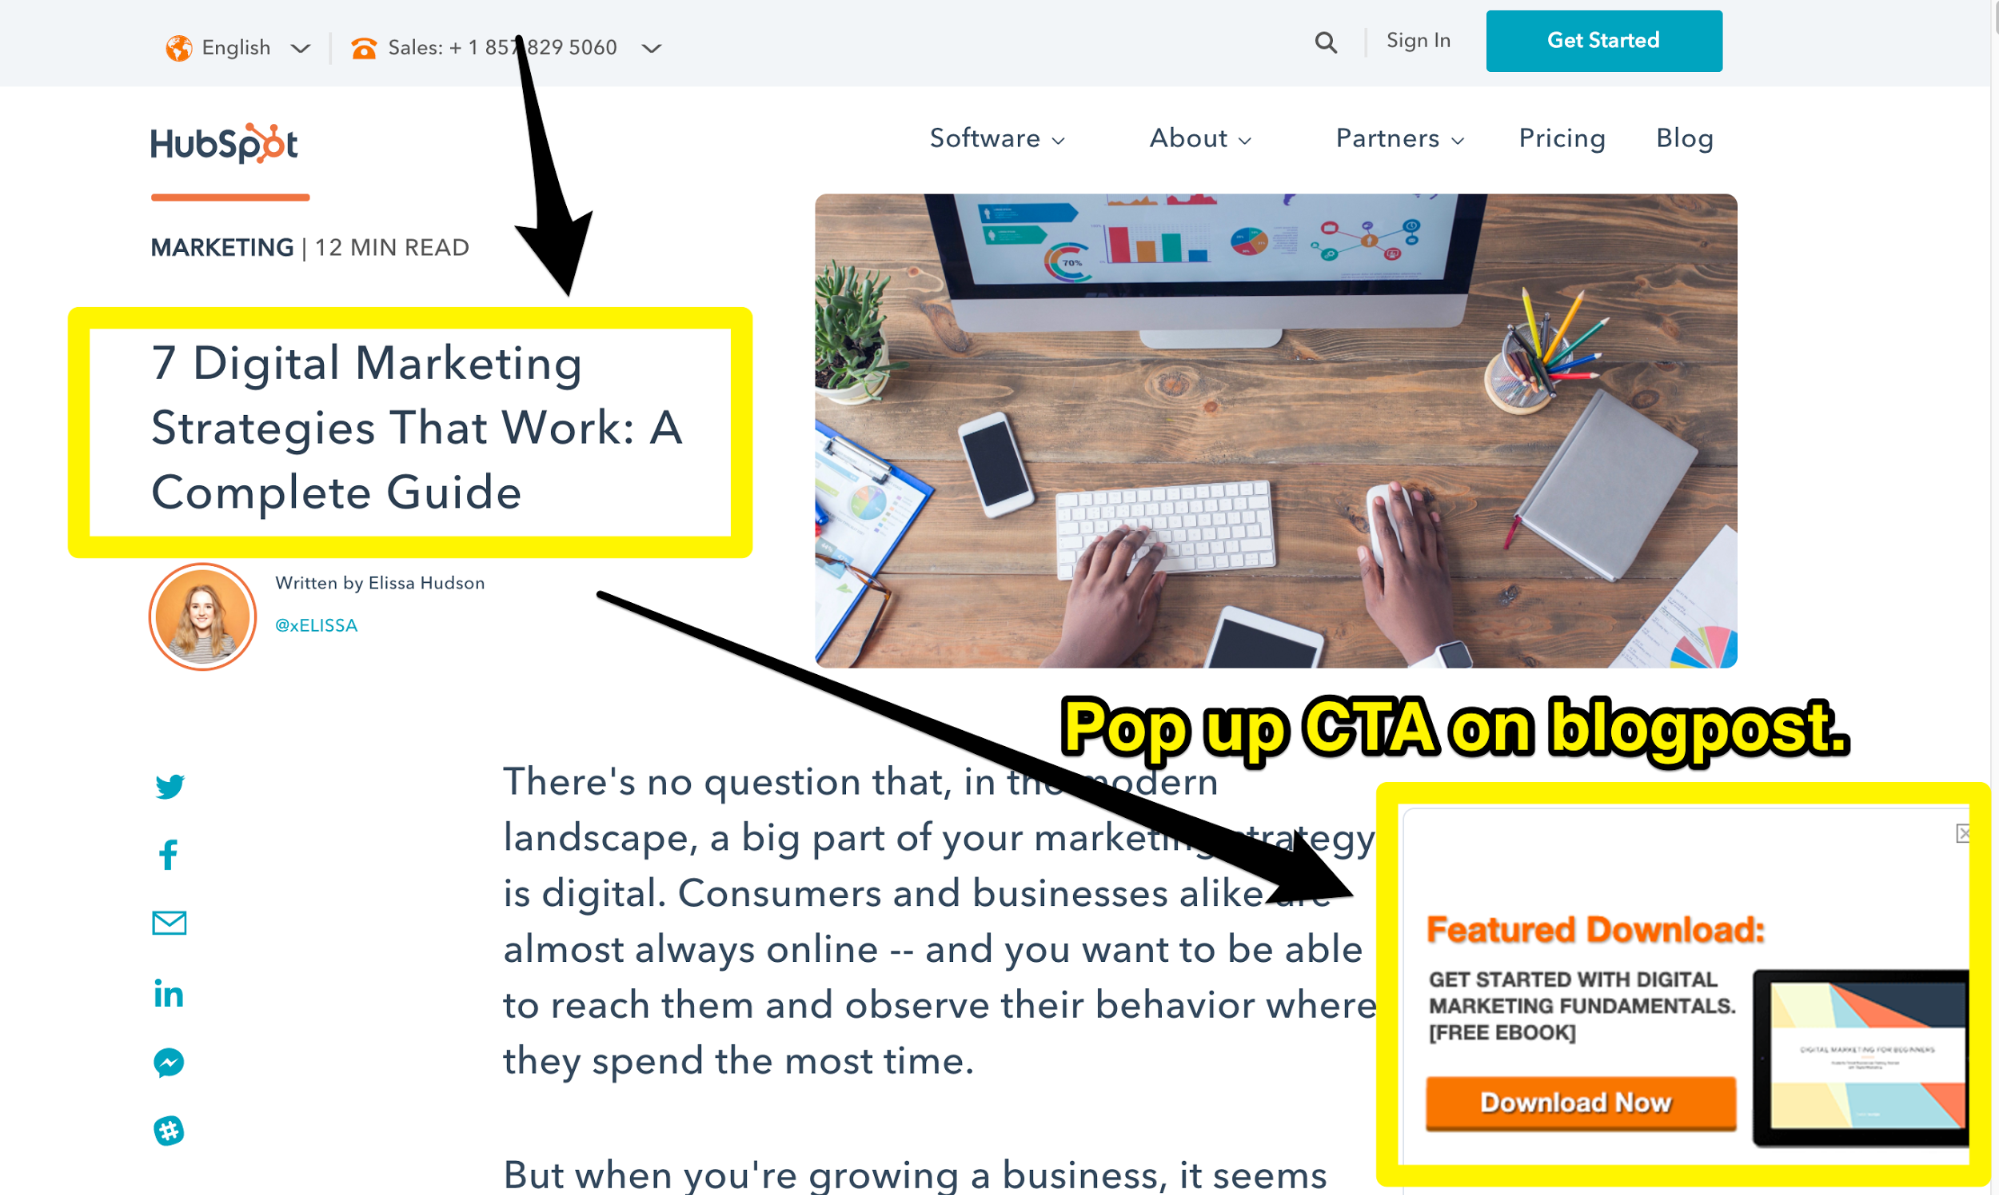 Screenshot showing an article by hubspot